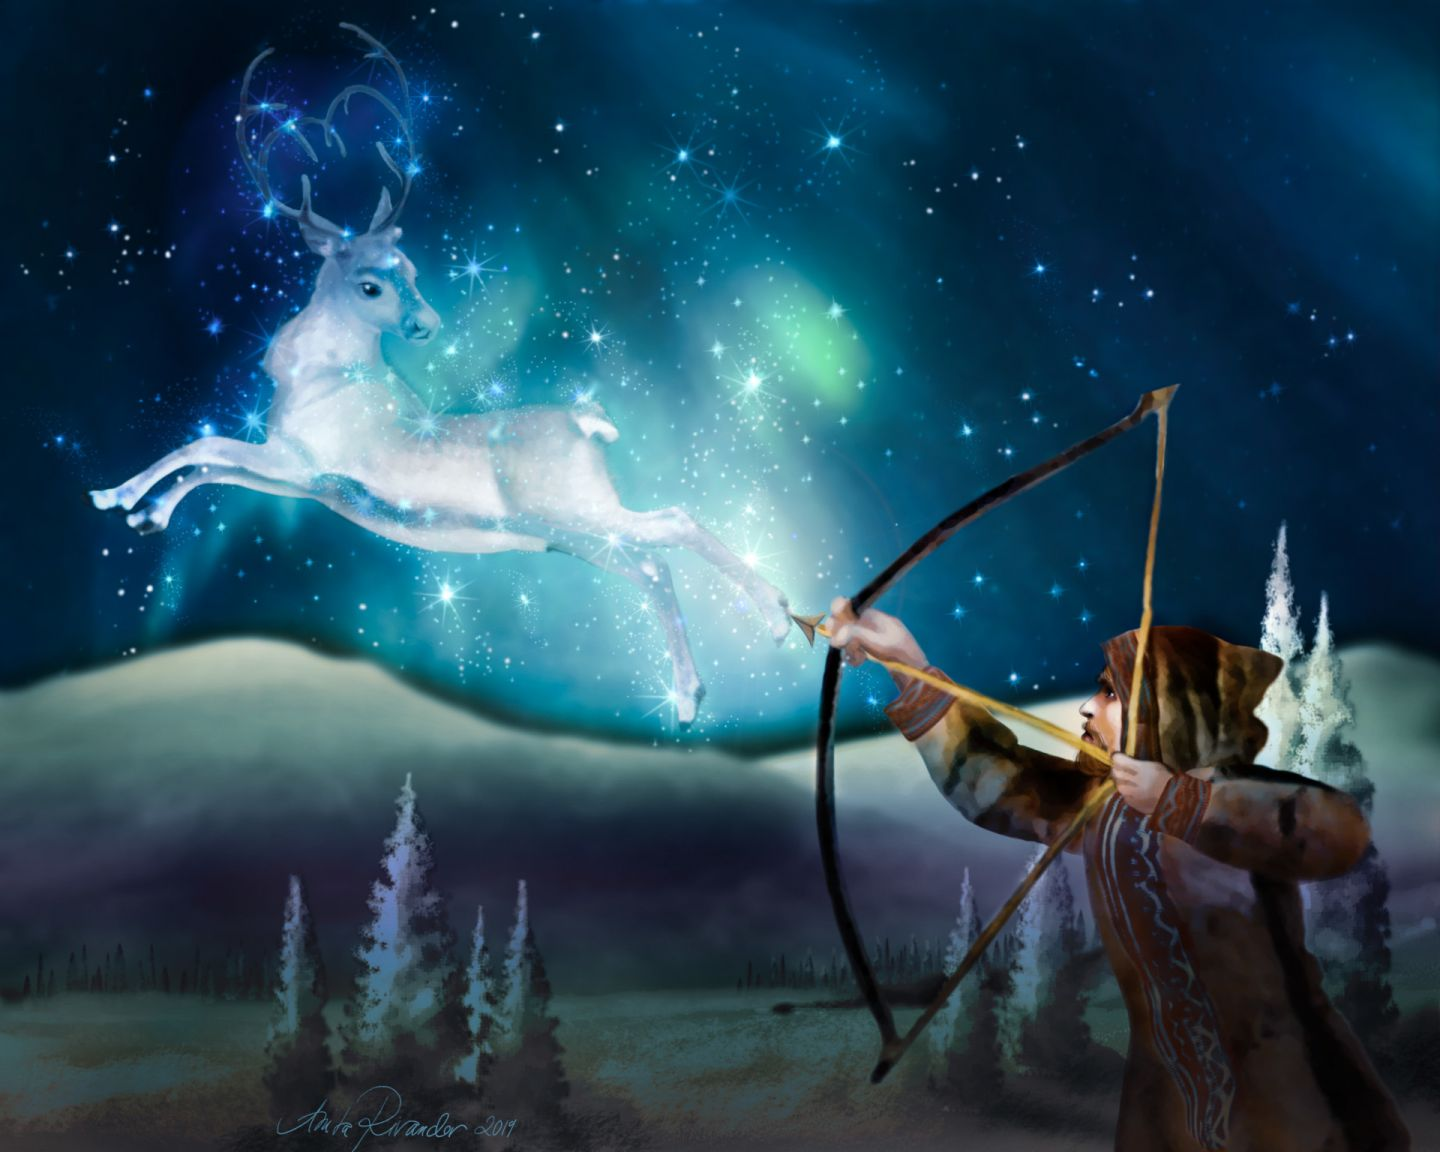 A hunter aims a bow and arrow at a cosmic reindeer manifesting as the Northern Lights (aurora borealis)